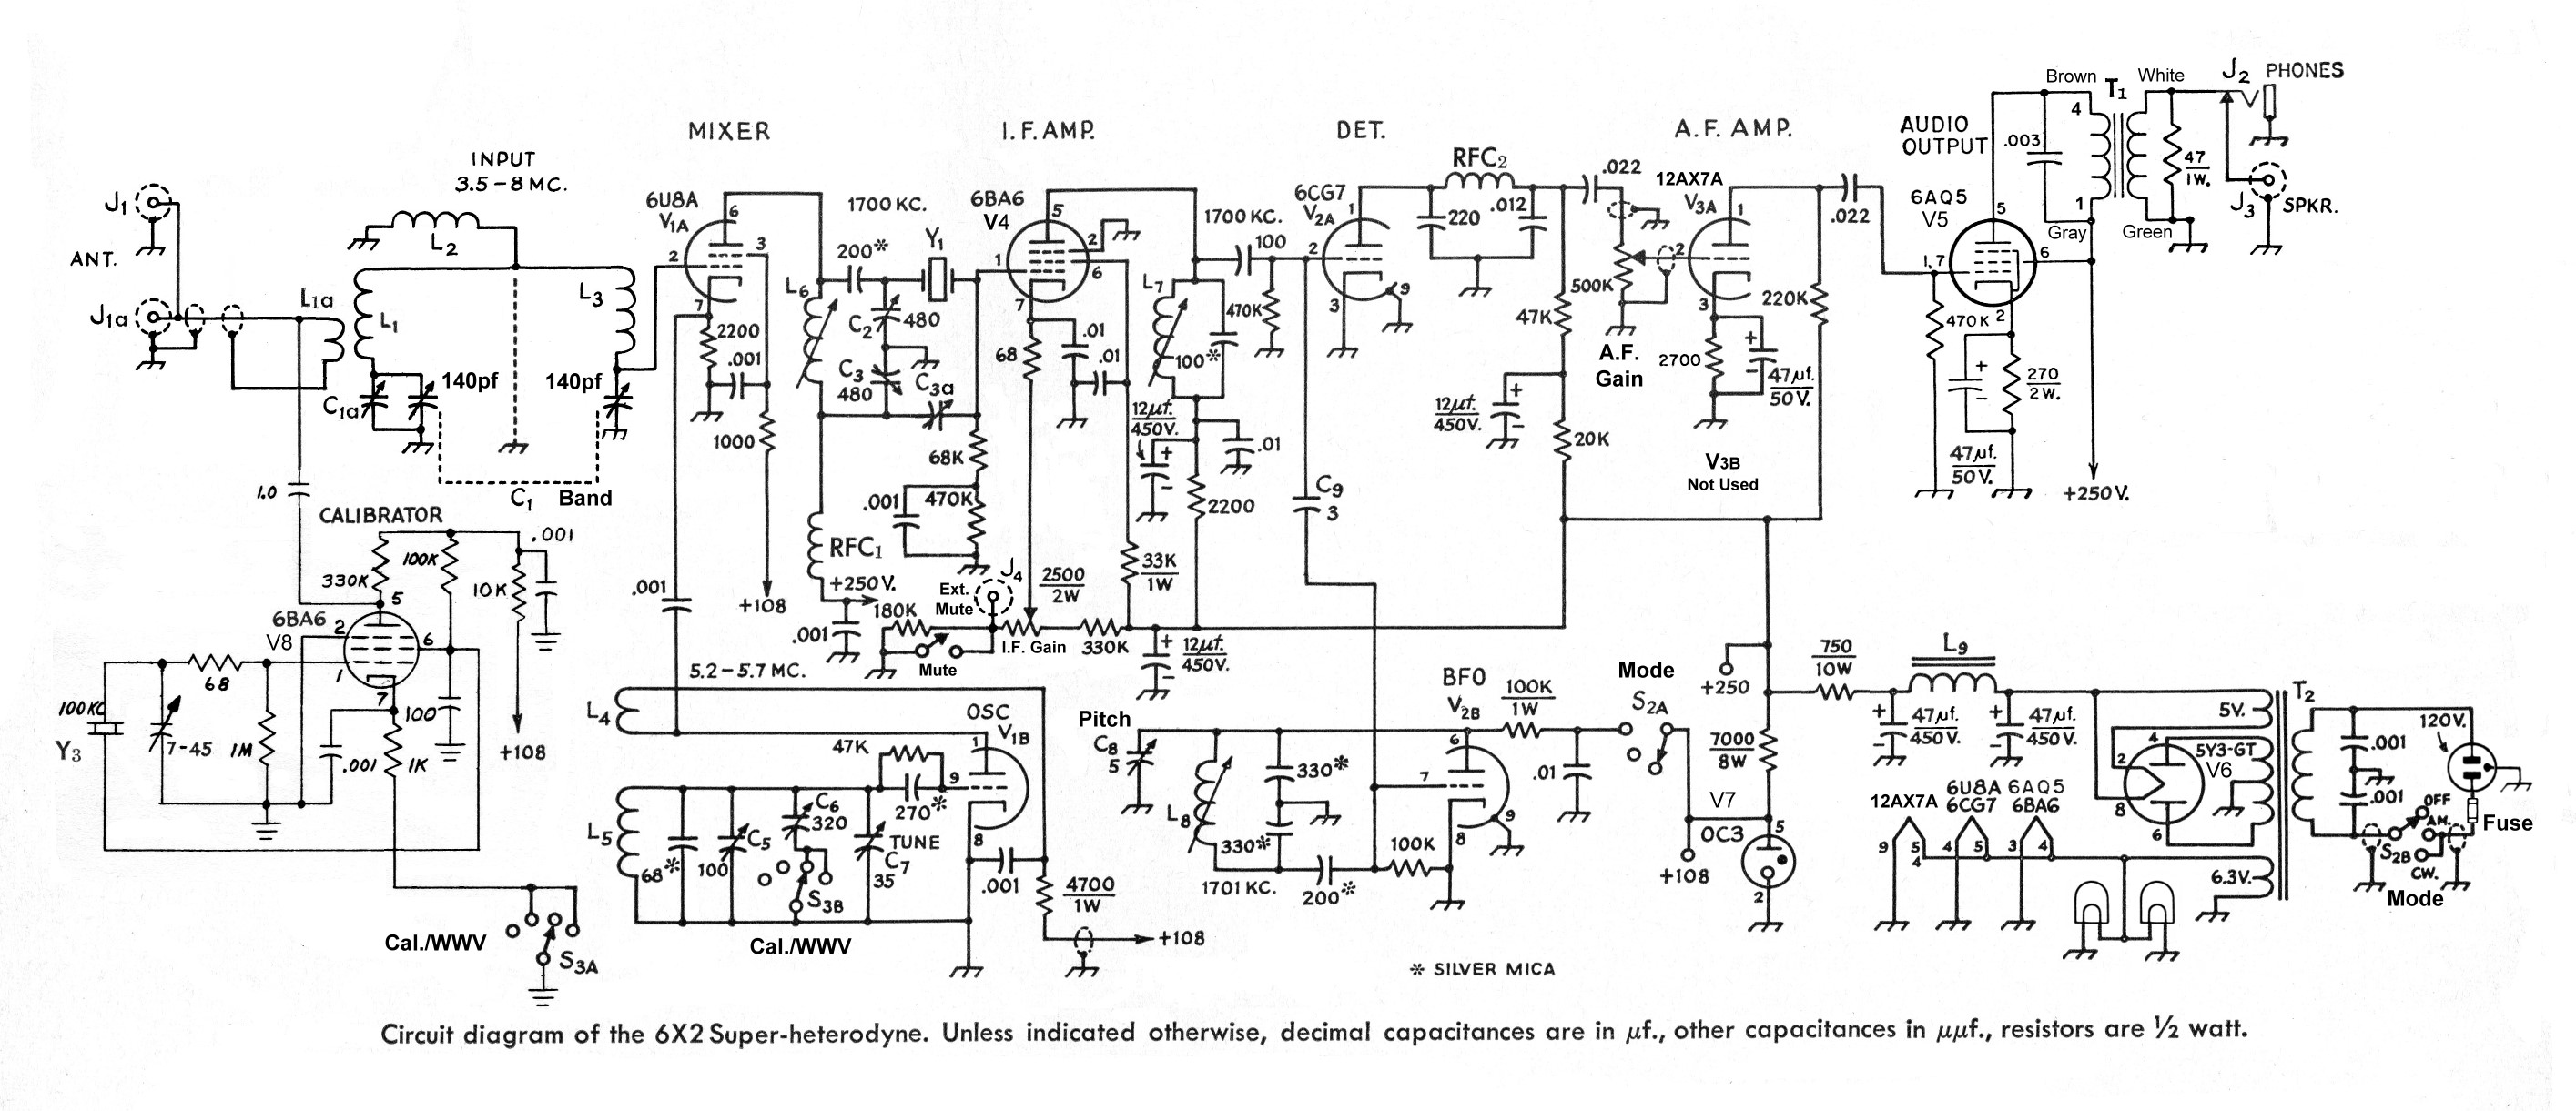 The AA8V 6x2 Superheterodyne Receiver - Schematic Diagram and ... Schematic on circuit diagram, straight-line diagram, data flow diagram, ladder logic, control flow diagram, function block diagram, technical drawing, functional flow block diagram, tube map, piping and instrumentation diagram, electronic design automation, diagramming software, schematic capture, one-line diagram, cross section, block diagram,